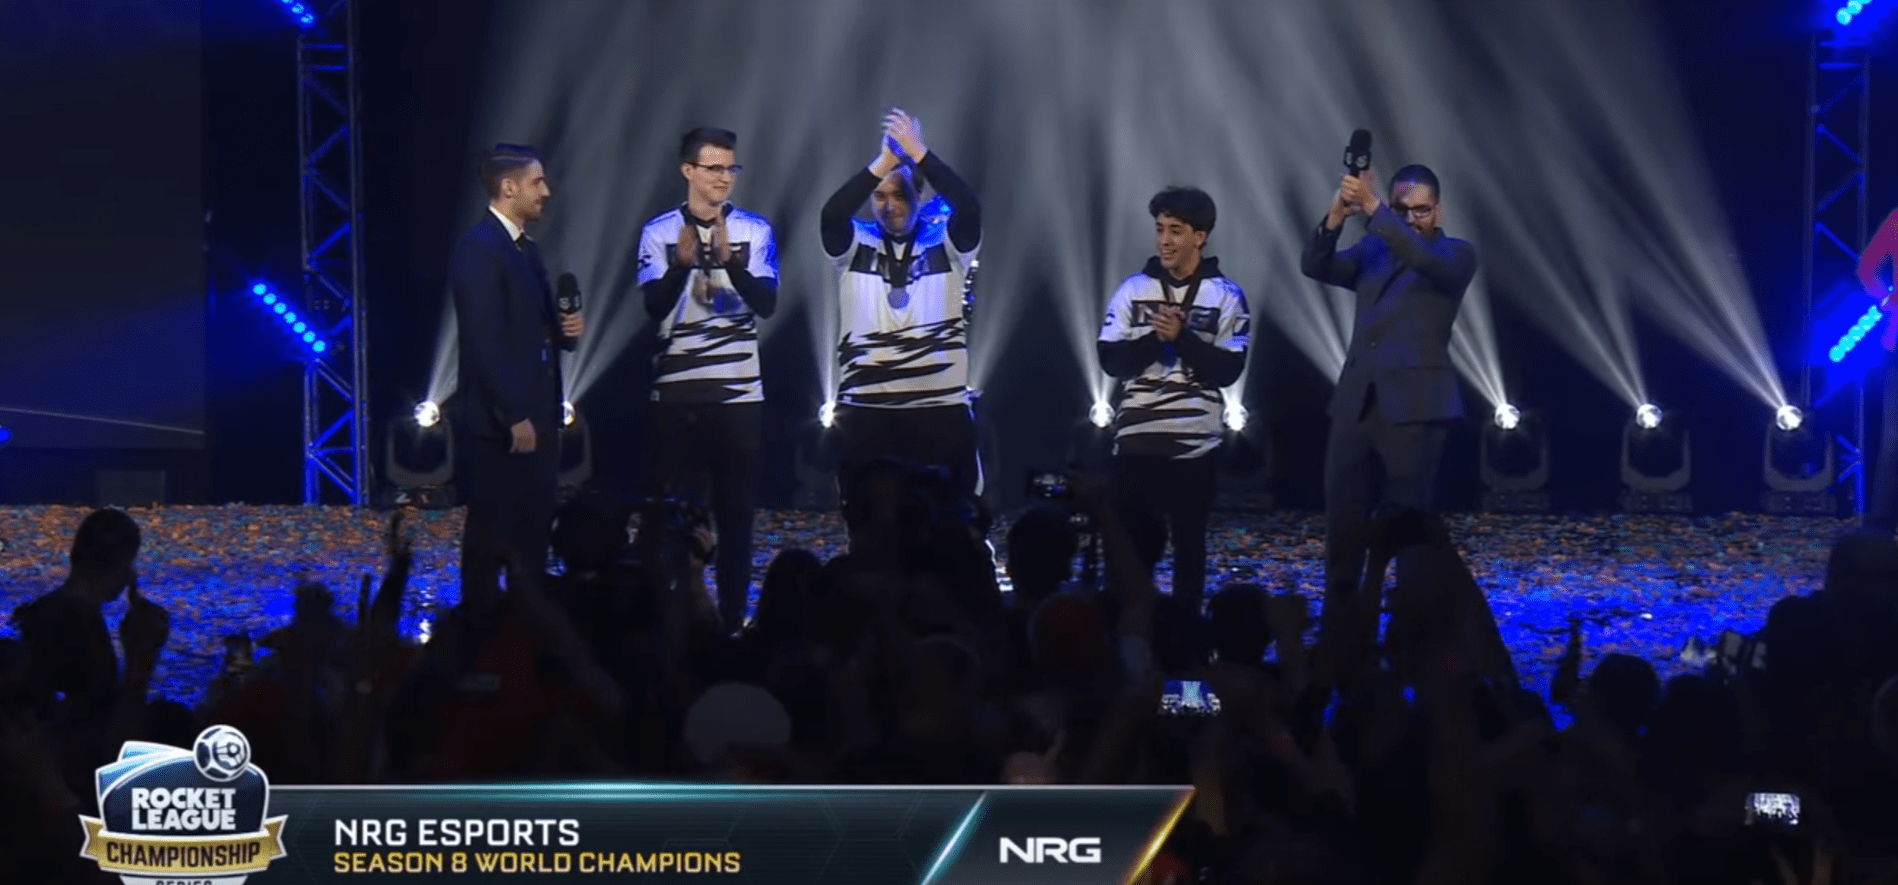 Rocket League Season 8 World Champions Have Been Crowned, NRG Esports Wins The Gold